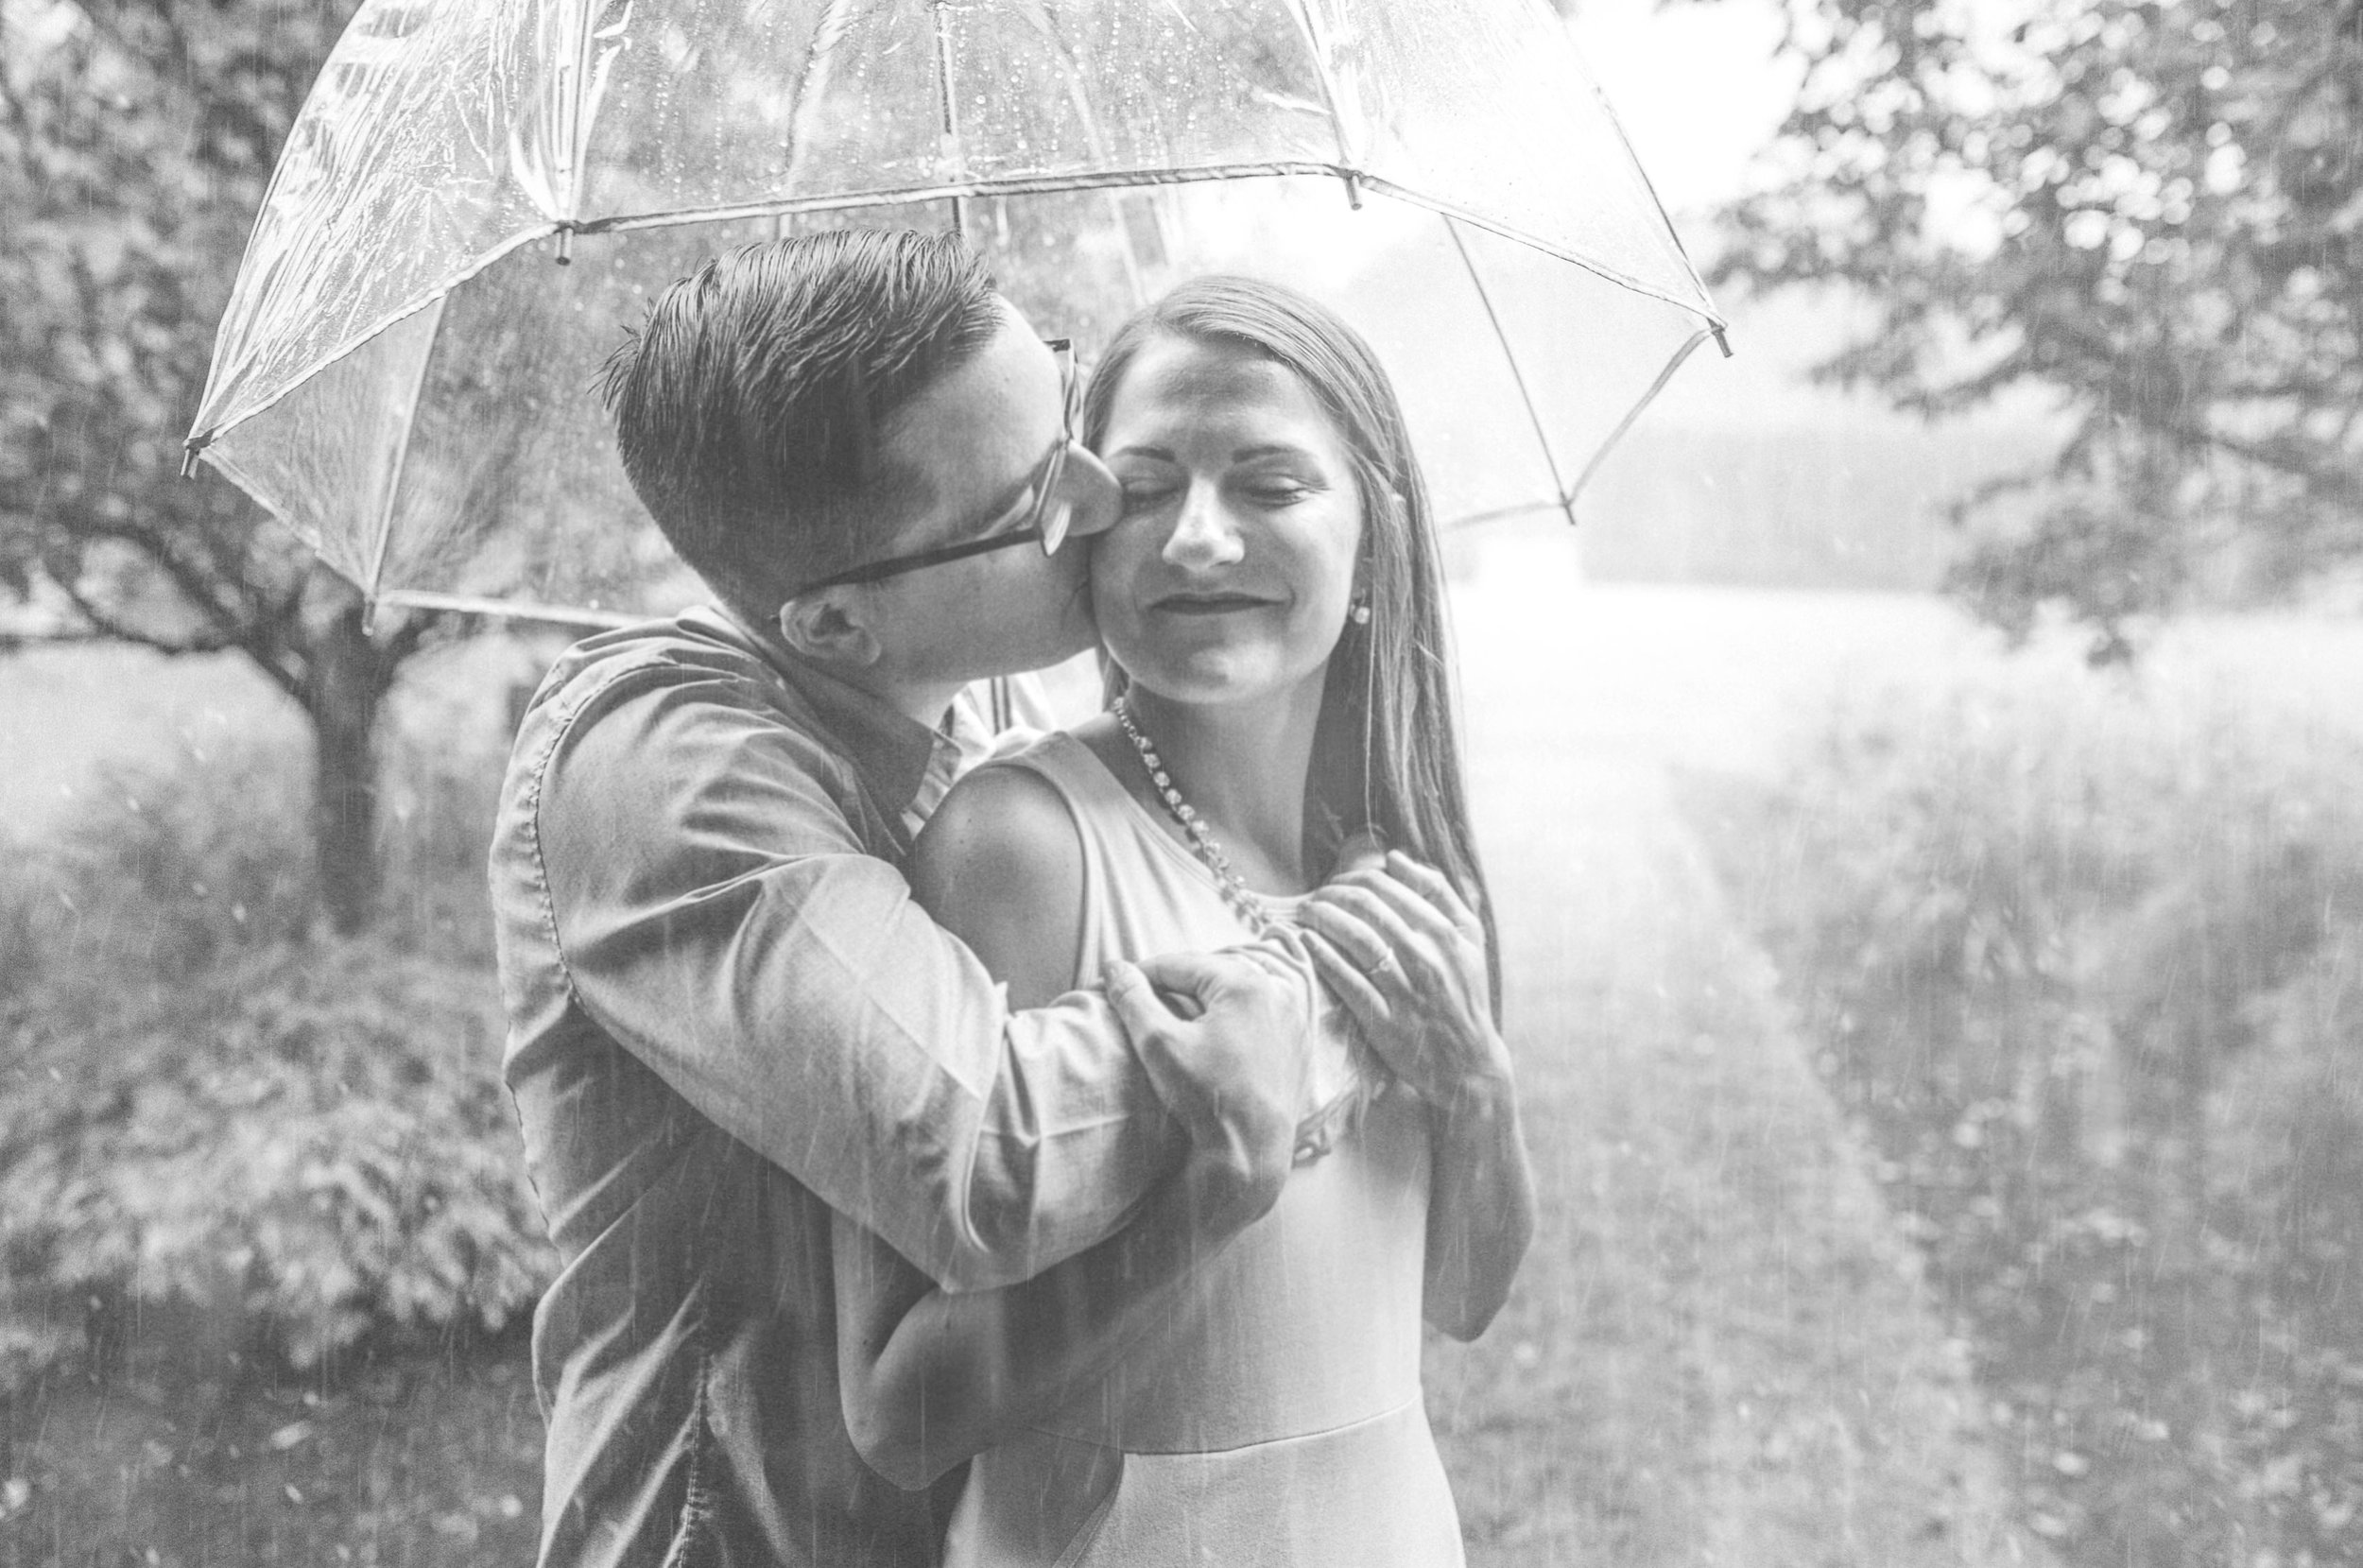 Johnstown Pittsburgh PA engagement session romantic rain couple portraits (14).jpg